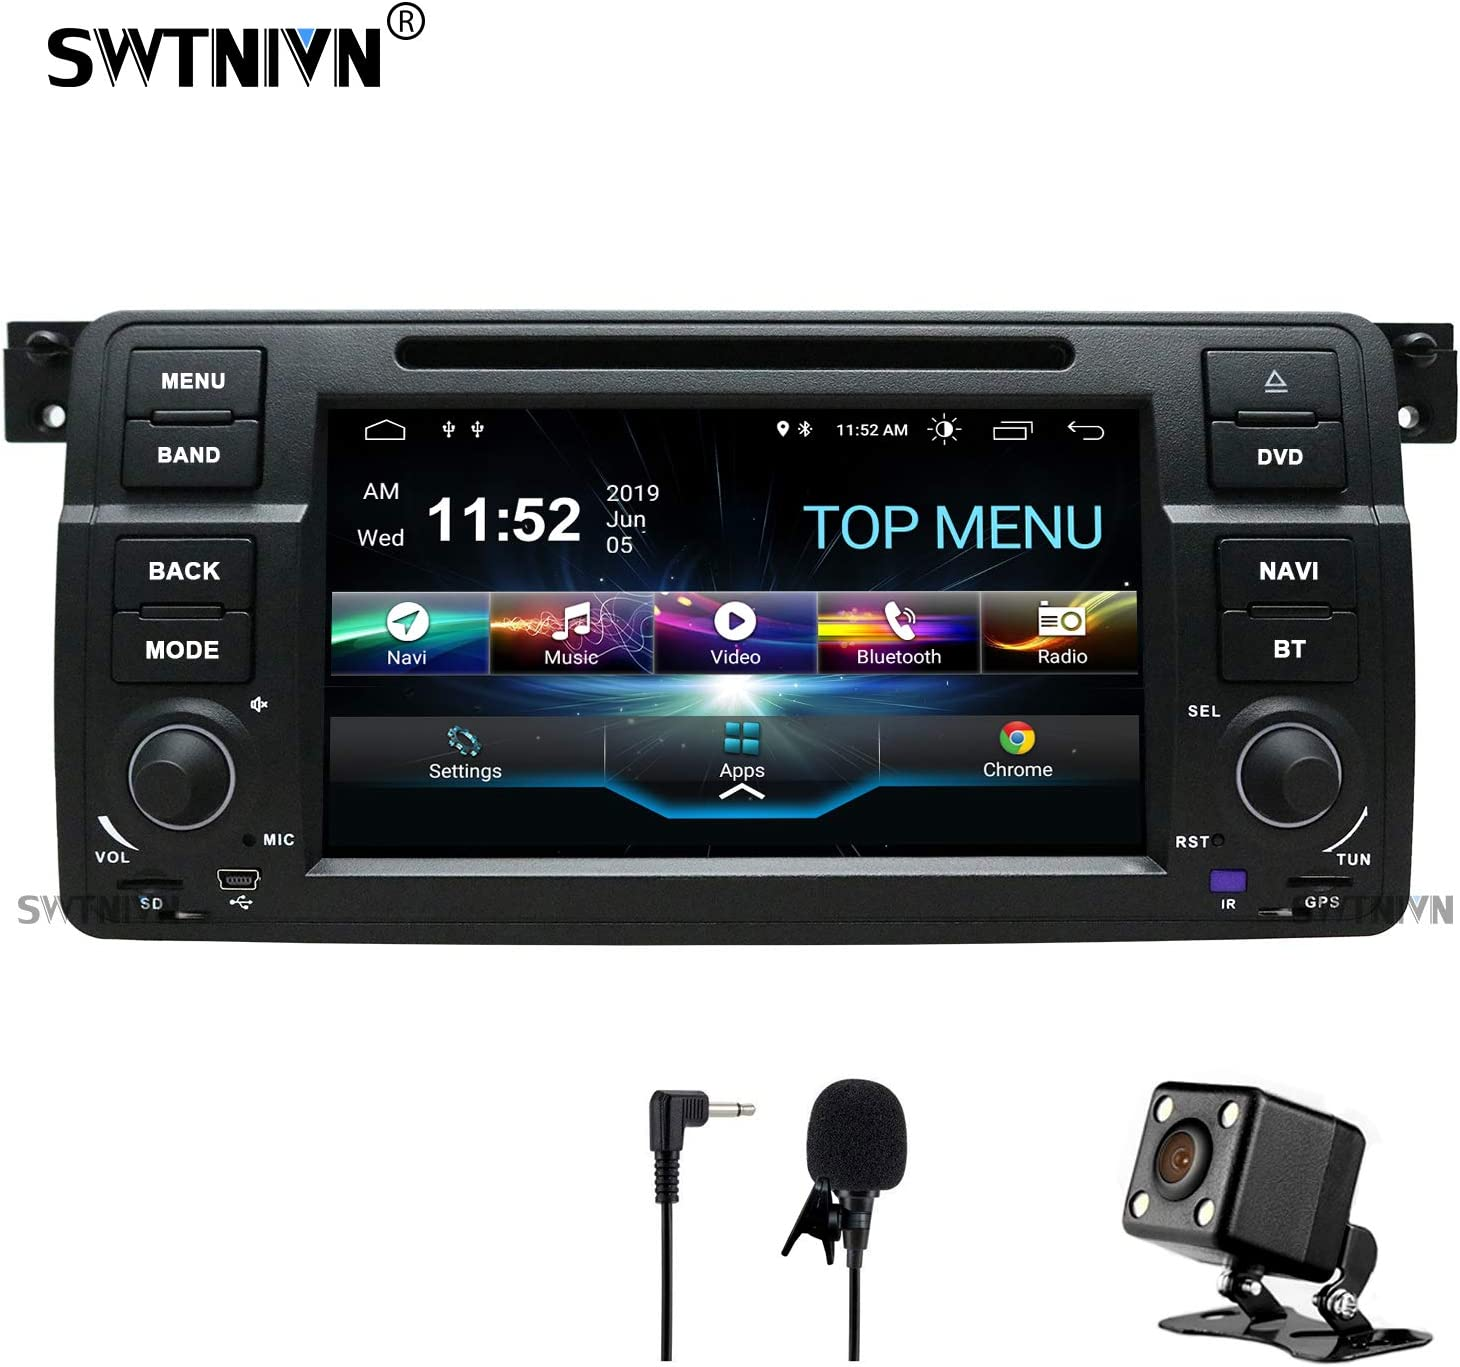 SWTNVIN Android 9.0 Car Stereo Compatible with BMW 3 Series 1999 2000 2001 2002 2003 2004(E46) Rover75 MG ZT 2G RAM 32G ROM 7 Inch HD Car Radio Support BT GPS TPMS Steering Wheel DVD Play